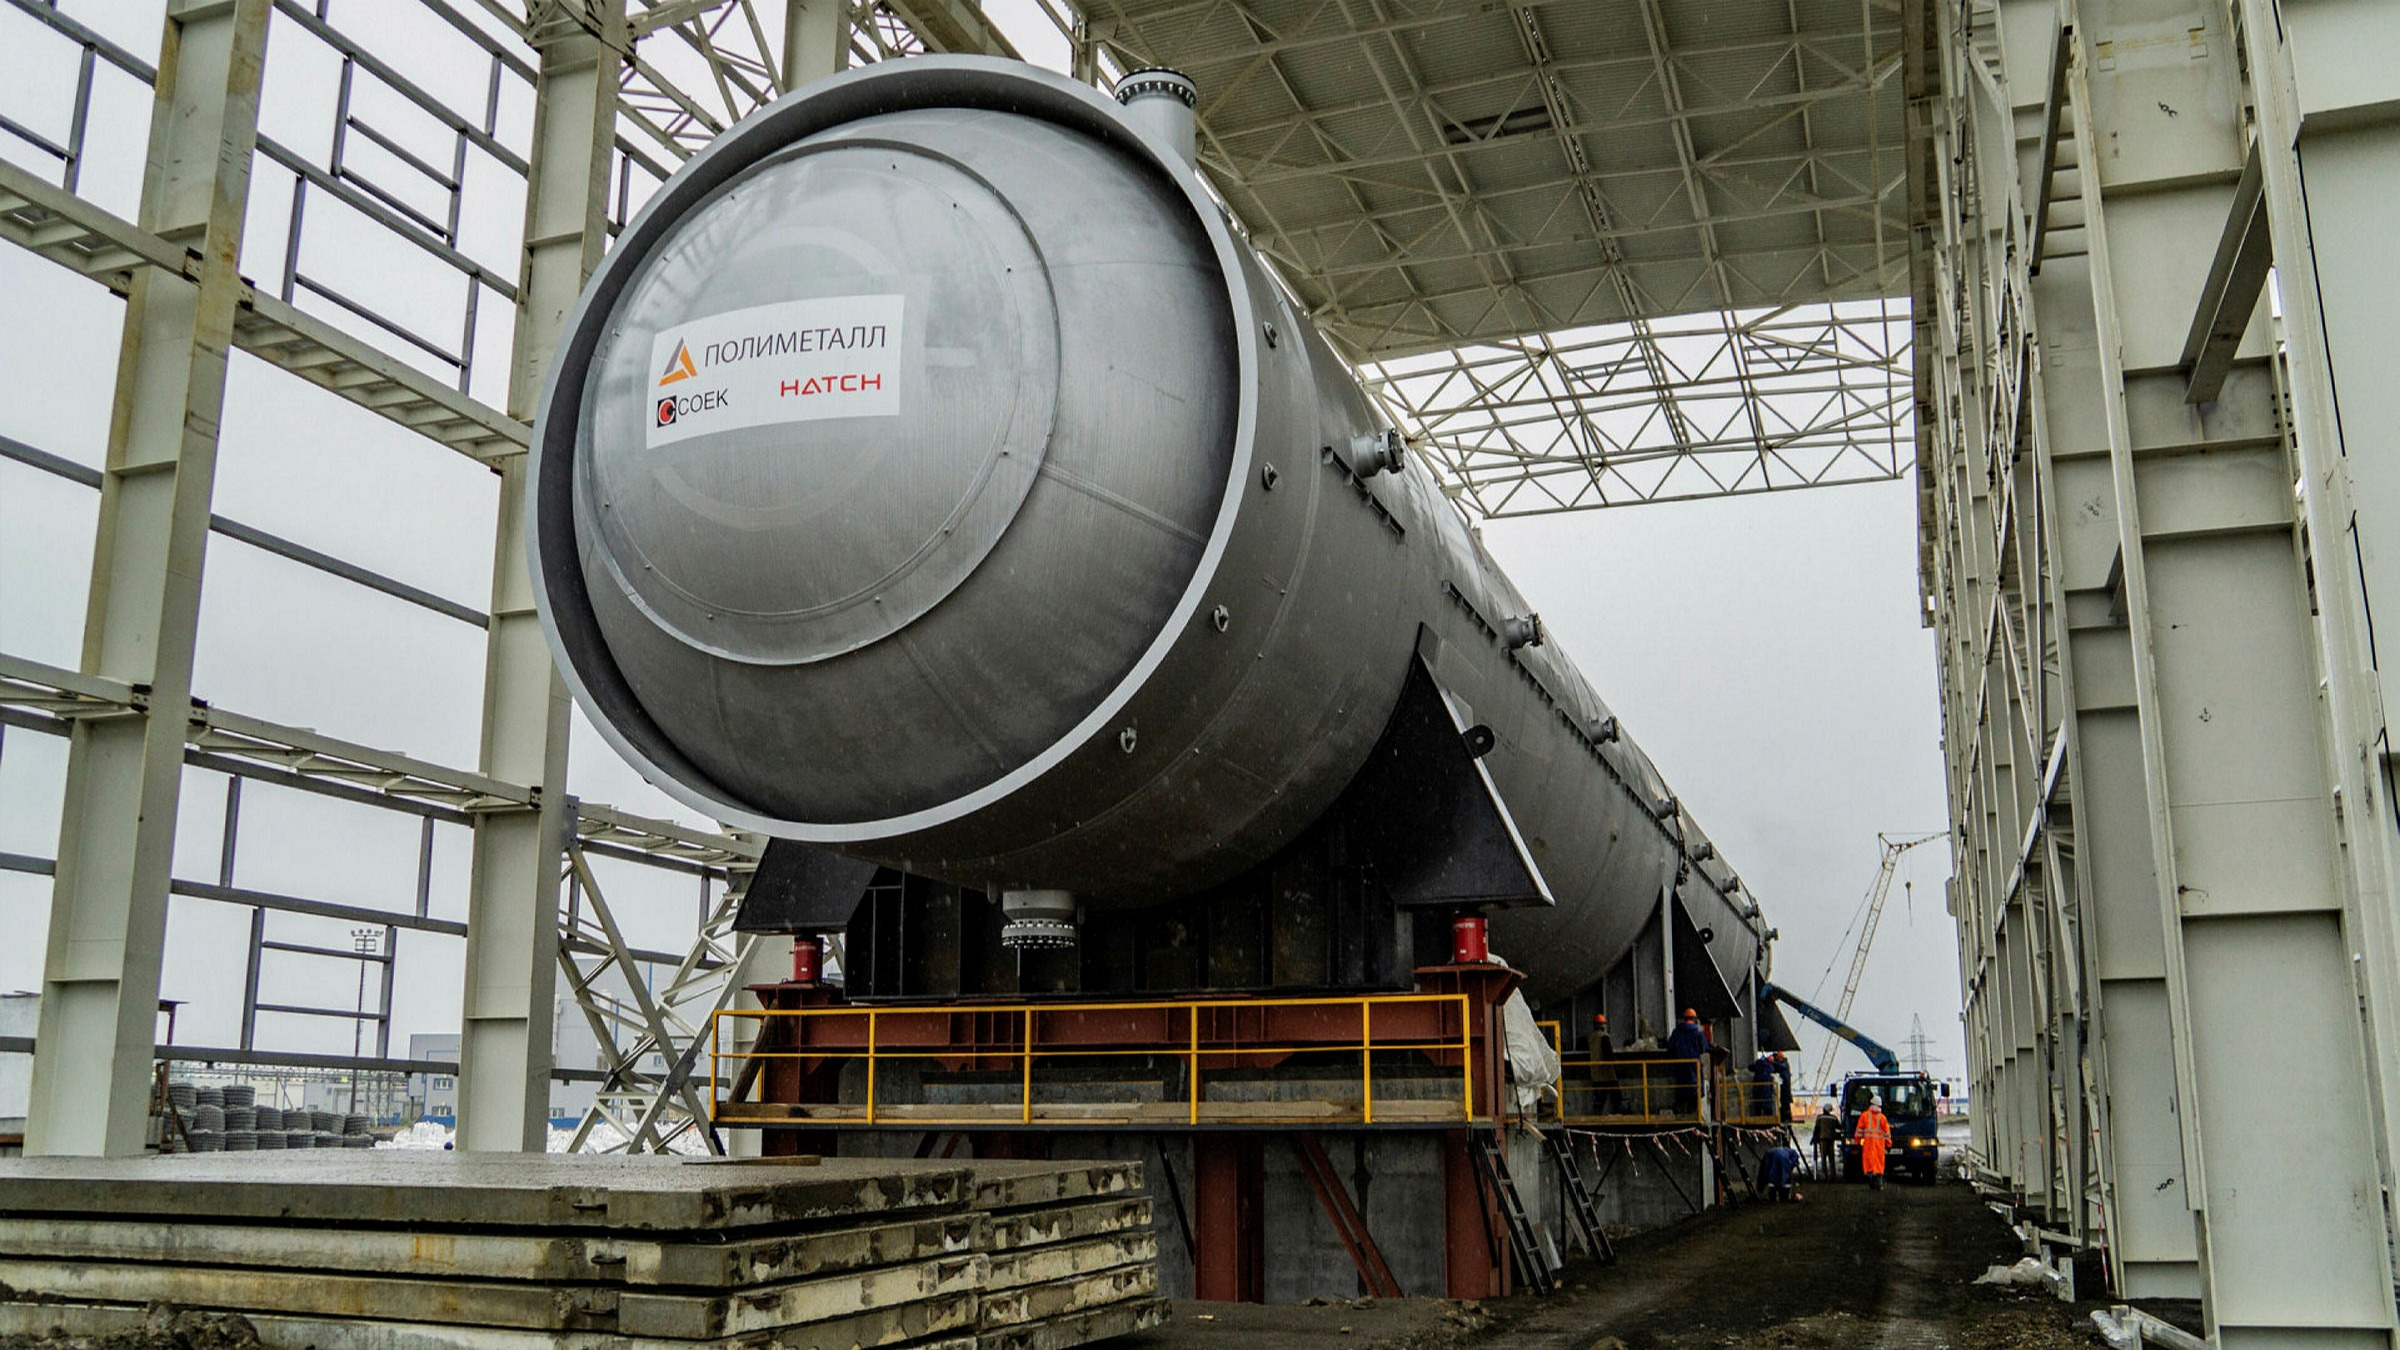 ft.com - Nastassia Astrasheuskaya in Moscow - Polymetal bets on Russia carbon tax